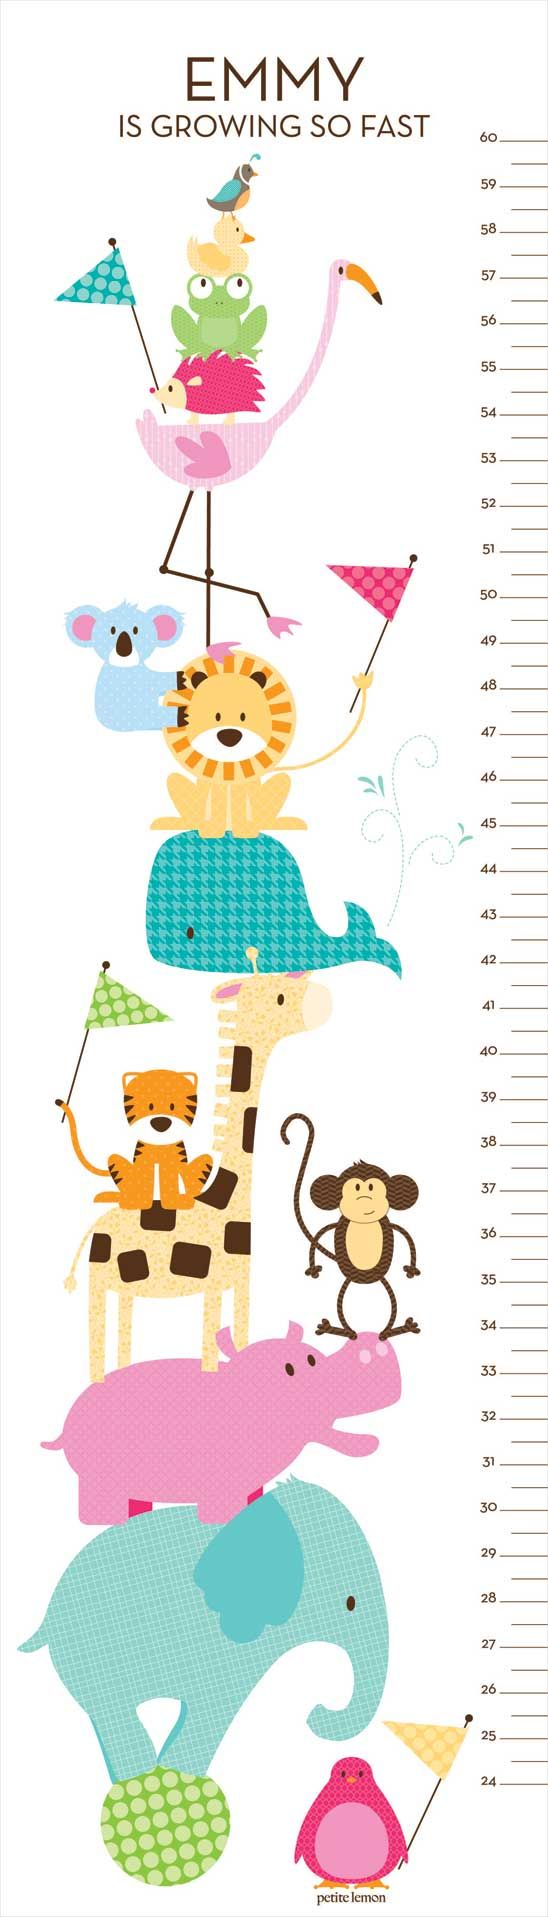 Zoo Friends - Tickle Me Pink. Fun Animal Themed Personalized Growth Chart. Frog, monkey, hippo — we've included all of his favorites in our Zoo Friends Animal Growth Chart. With a playful pile of animals all balanced atop a bouncy little ball, your little one is sure to enjoy spotting his favorite animals. Share in their joy while you capture his growth. Available in Ocean Blue, Tickle Me Pink, or Teal & Lime color hues.